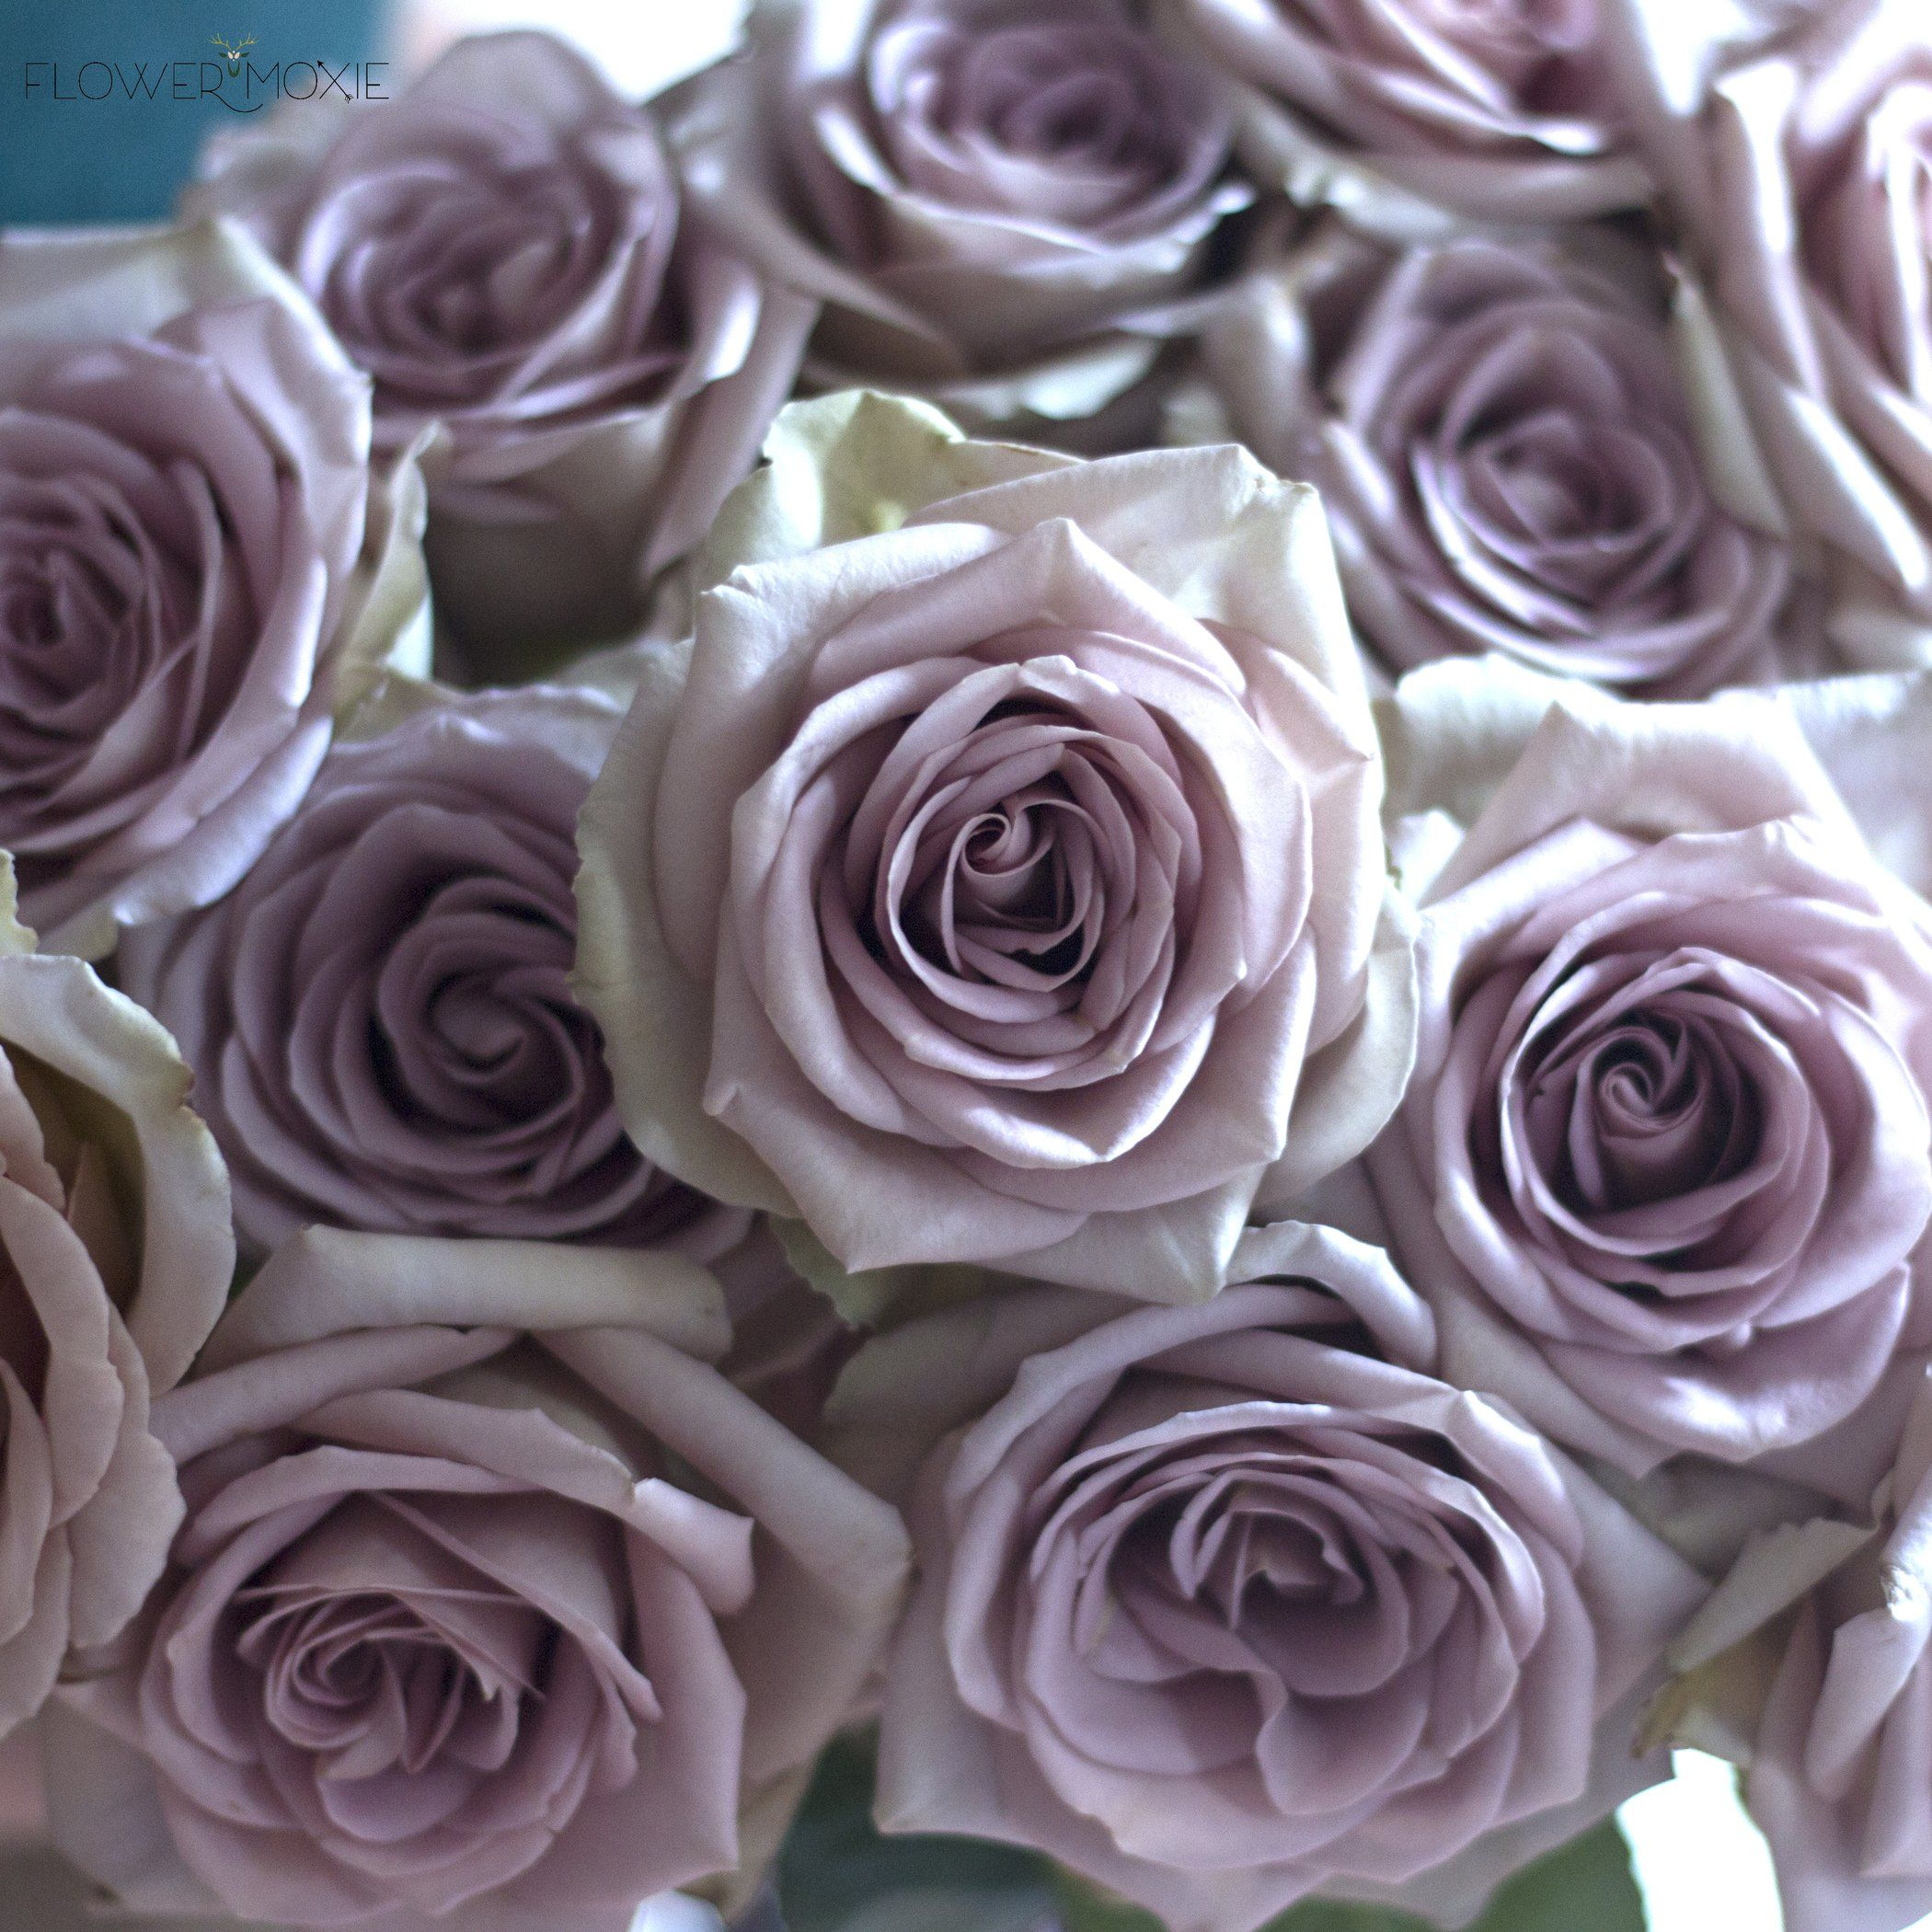 50 Silk Roses Flower Heads Artificial Bridal Clips Wedding Party Decor 7 Colors